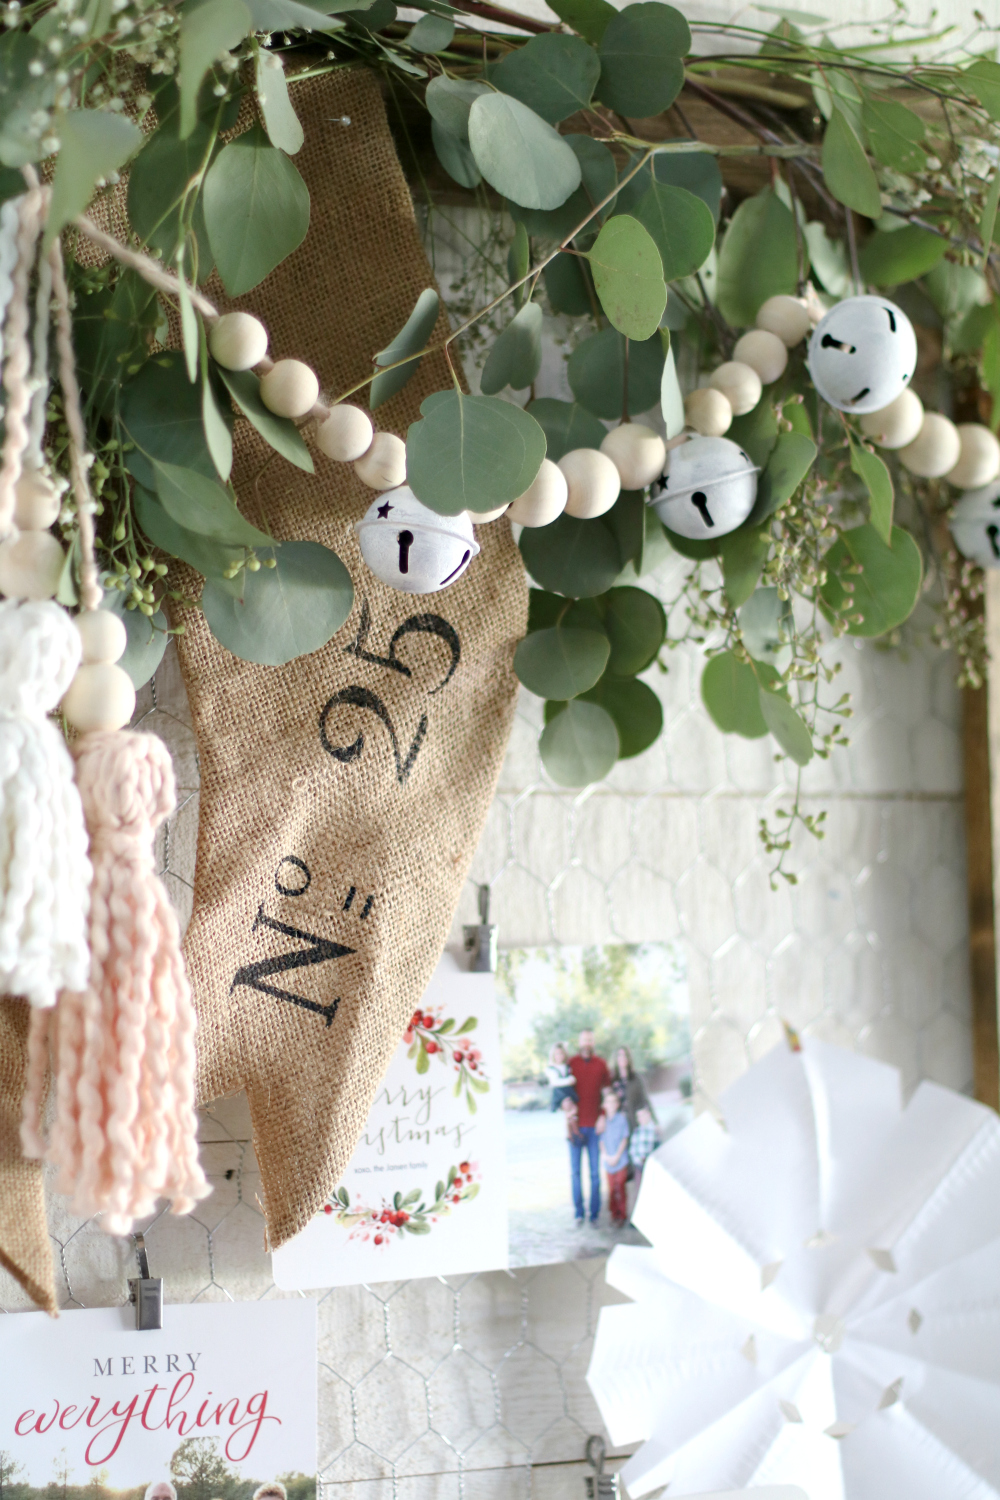 Make these easy DIY Tassels with wood beads, so cute and easy! Tie to ends of garland, on top of a stocking, or onto gift wrap-- cute and easy! #diy #tassels #tassle #christmasdecor #garland